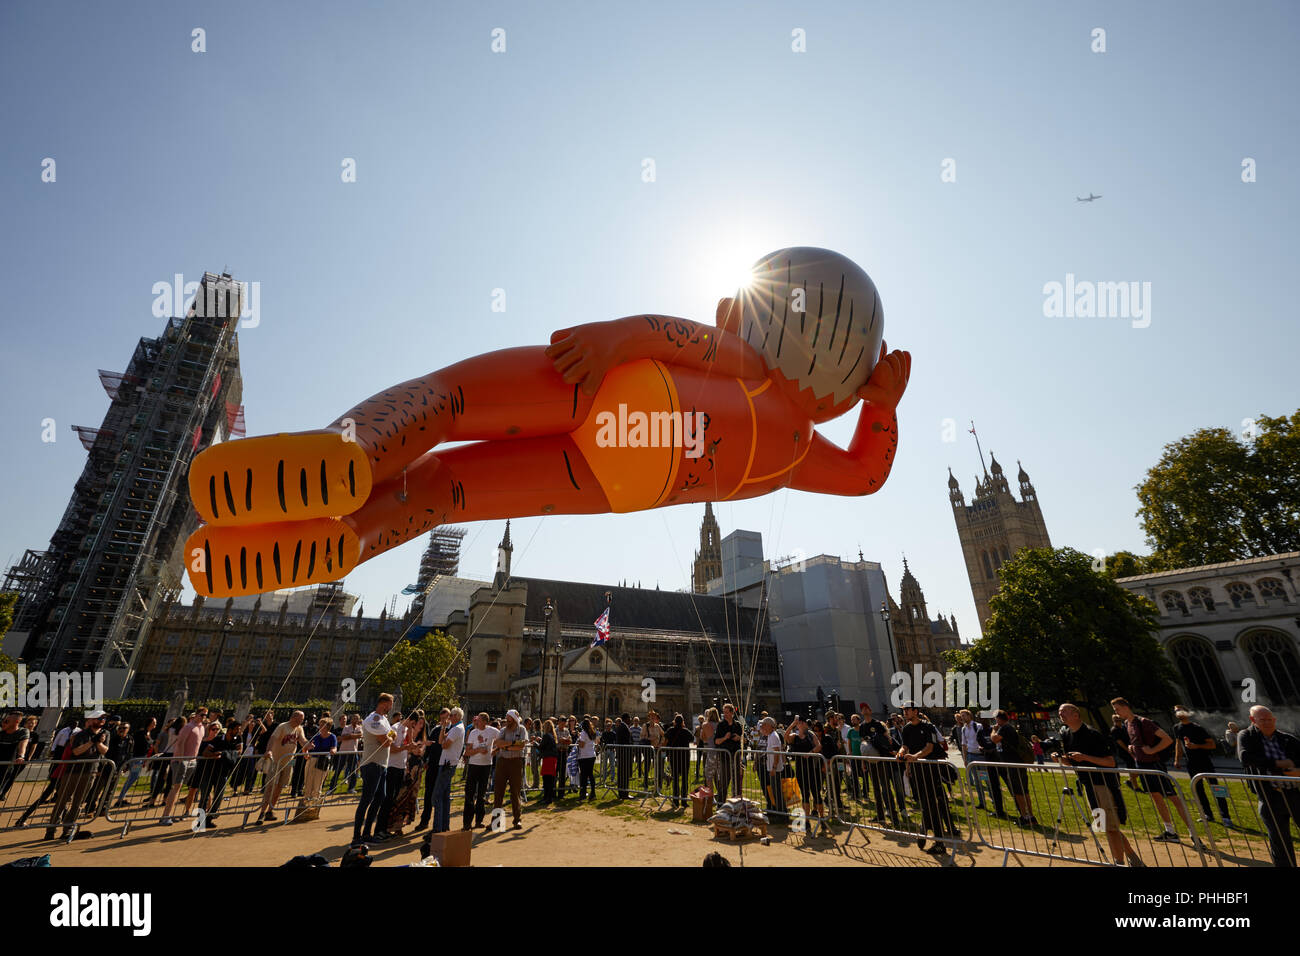 London, U.K. - 1 September 2018: A balloon of London mayor Sadiq Khan faces the Houses of Parliament at the Make London Safe protest in Parliament Square. Credit: Kevin Frost/Alamy Live News - Stock Image